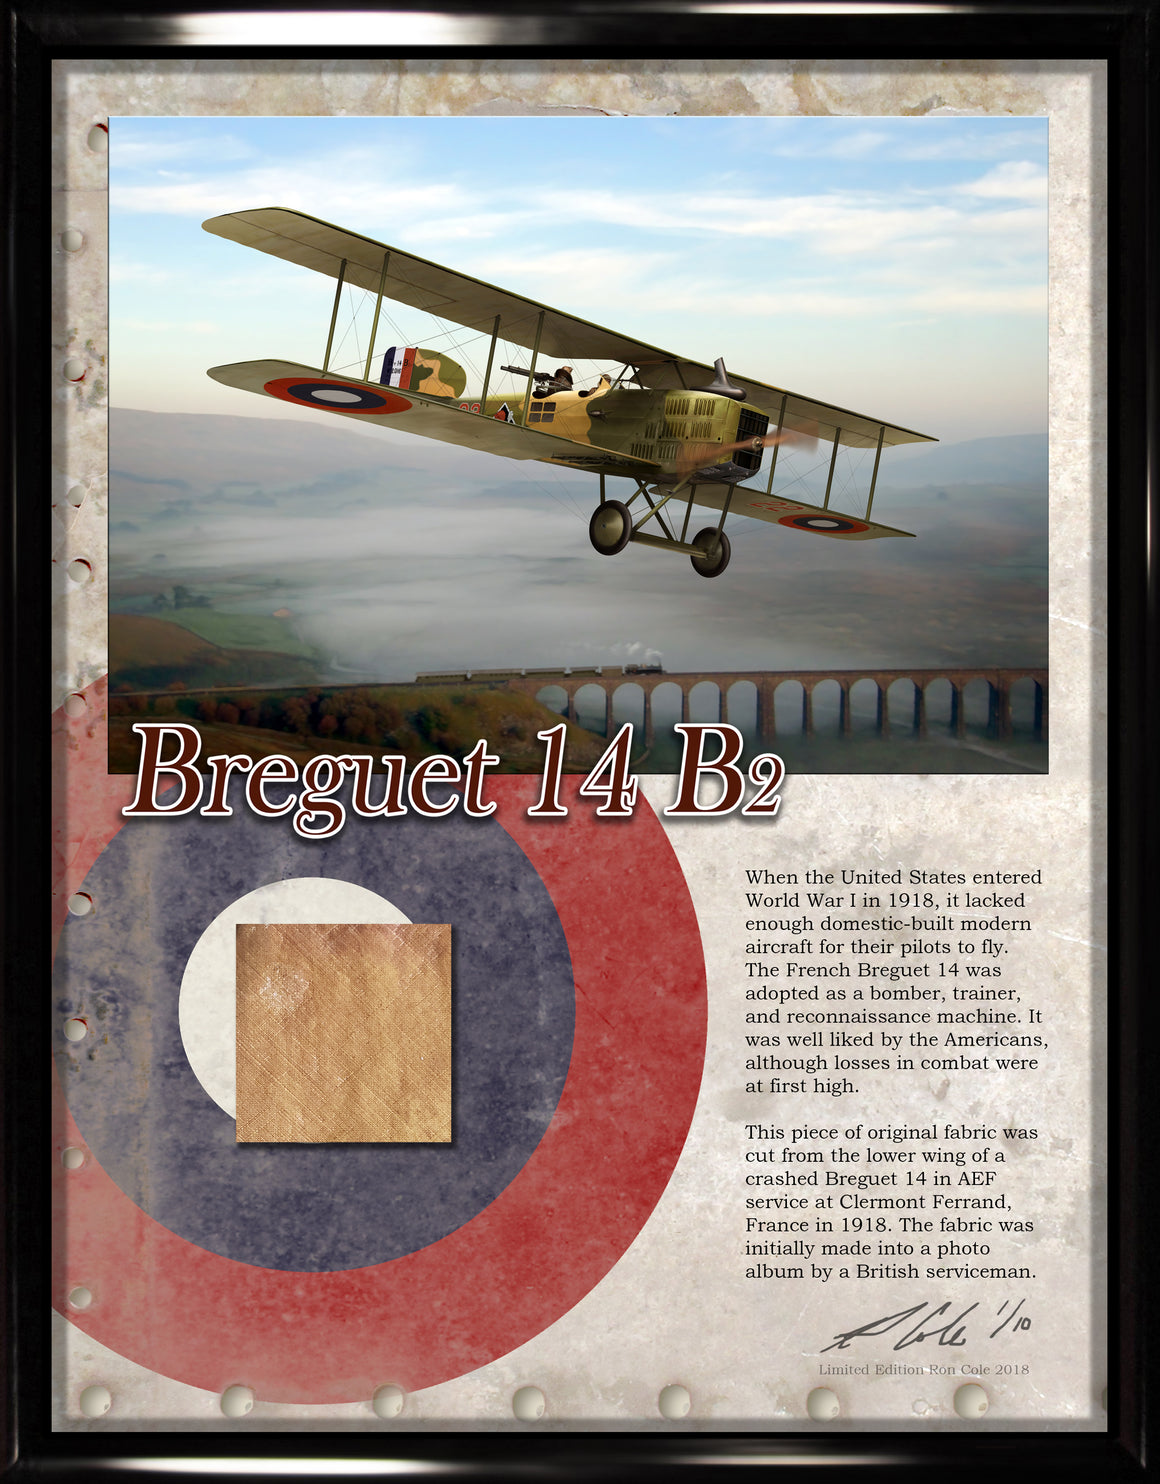 American Air Corps (AEF) Breguet 14 Original Fabric Relic Display